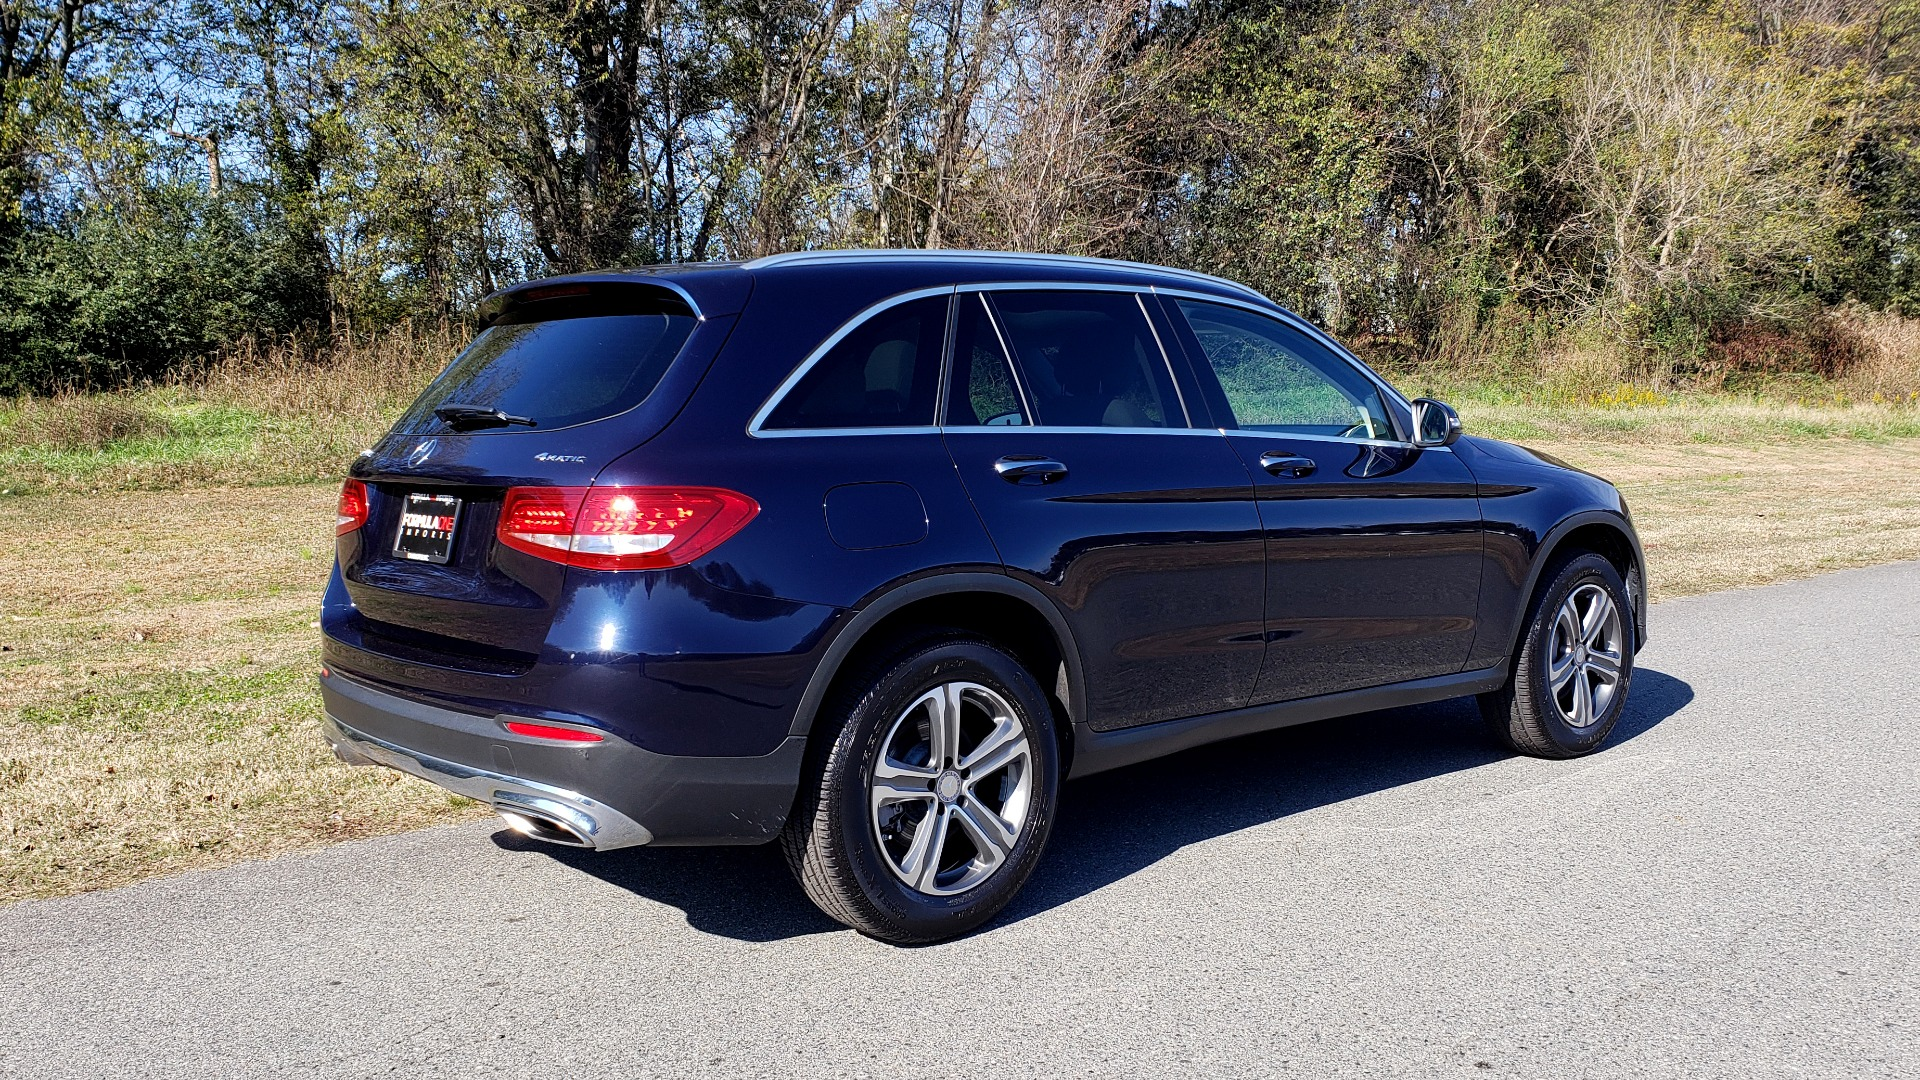 Used 2017 Mercedes-Benz GLC 300 4MATIC / PREM / NAV / KEYLESS-GO / SUNROOF / REARVIEW for sale Sold at Formula Imports in Charlotte NC 28227 6